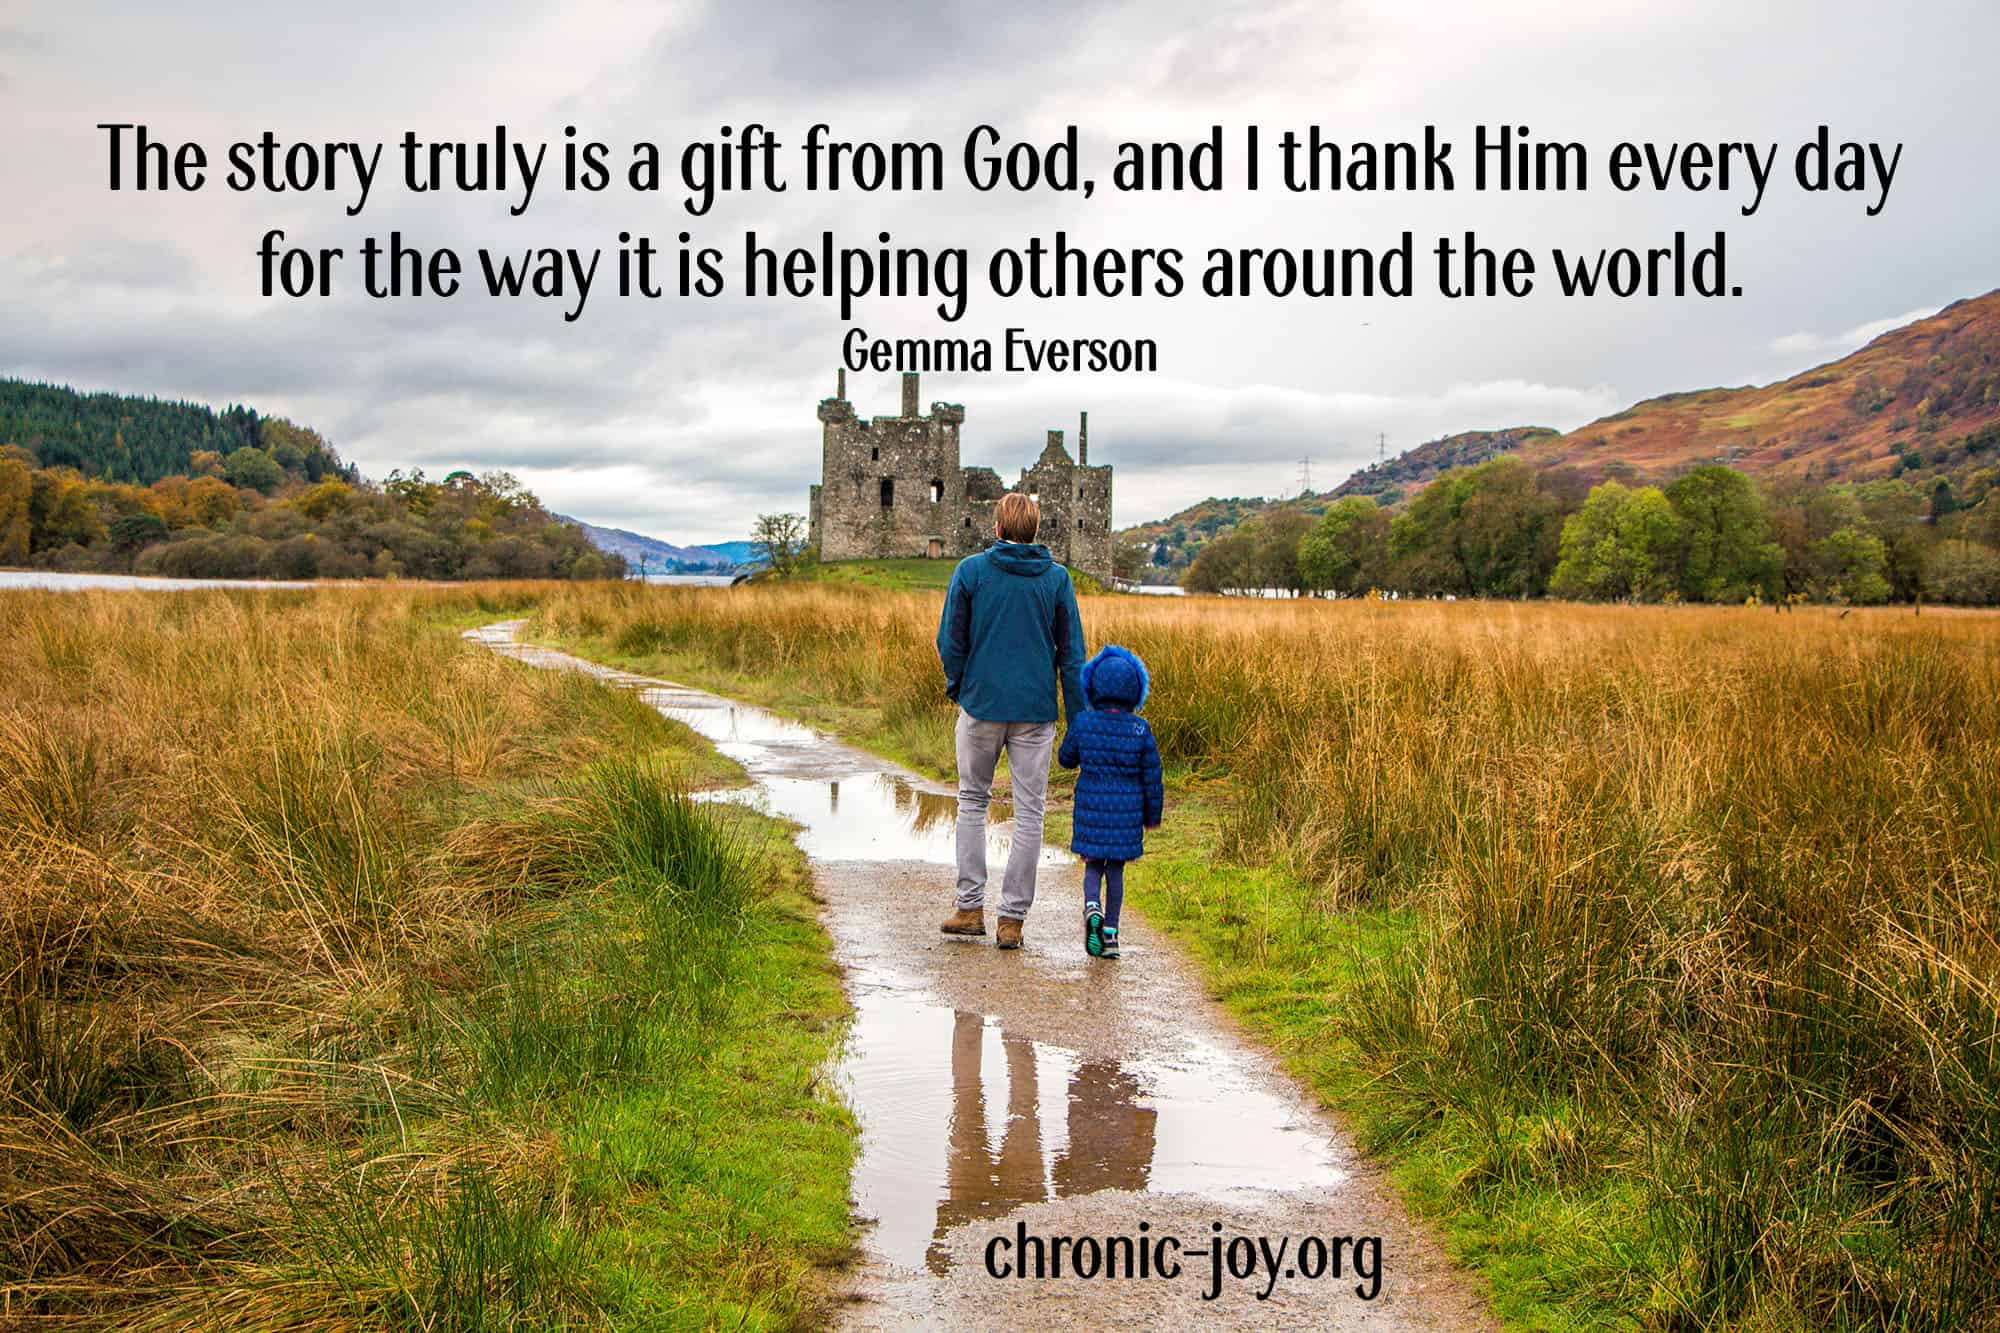 """""""The story truly is a gift from God, and I thank Him every day for the way it is helping others around the world."""" Gemma Everson"""